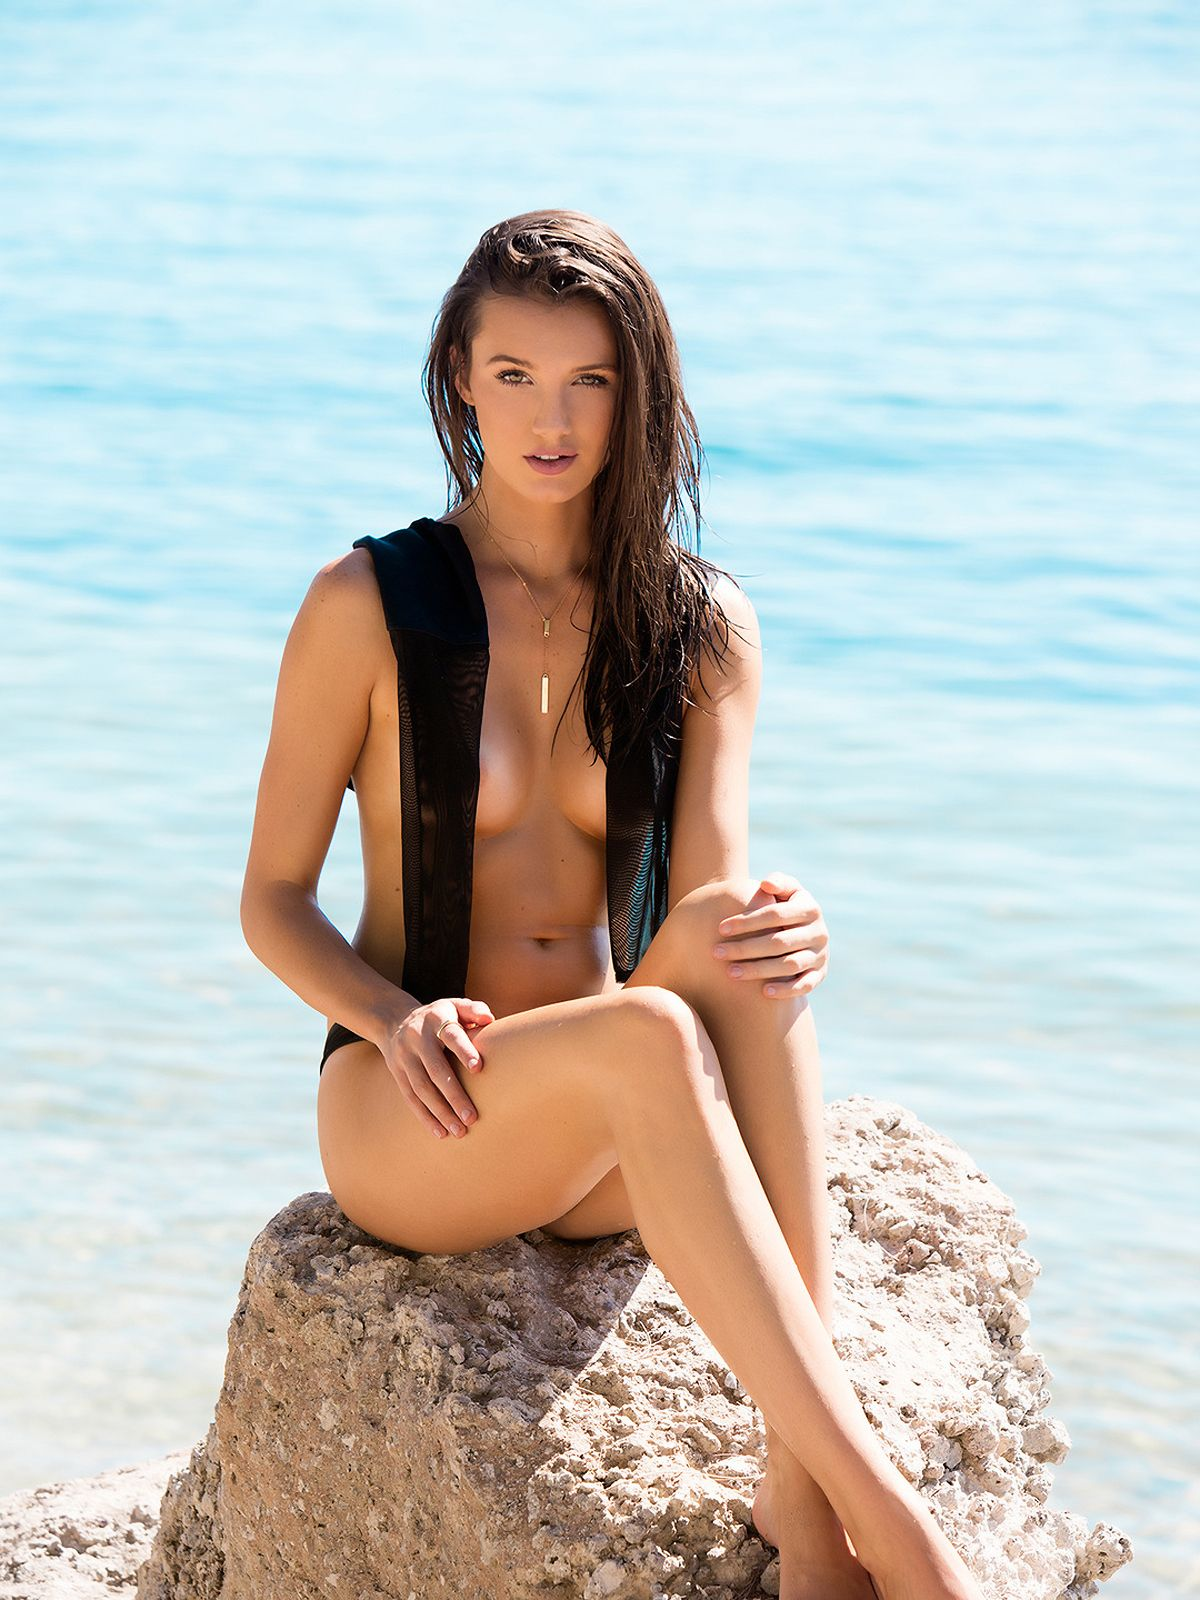 Hot Hailey Outland naked (33 photos), Topless, Paparazzi, Twitter, lingerie 2020